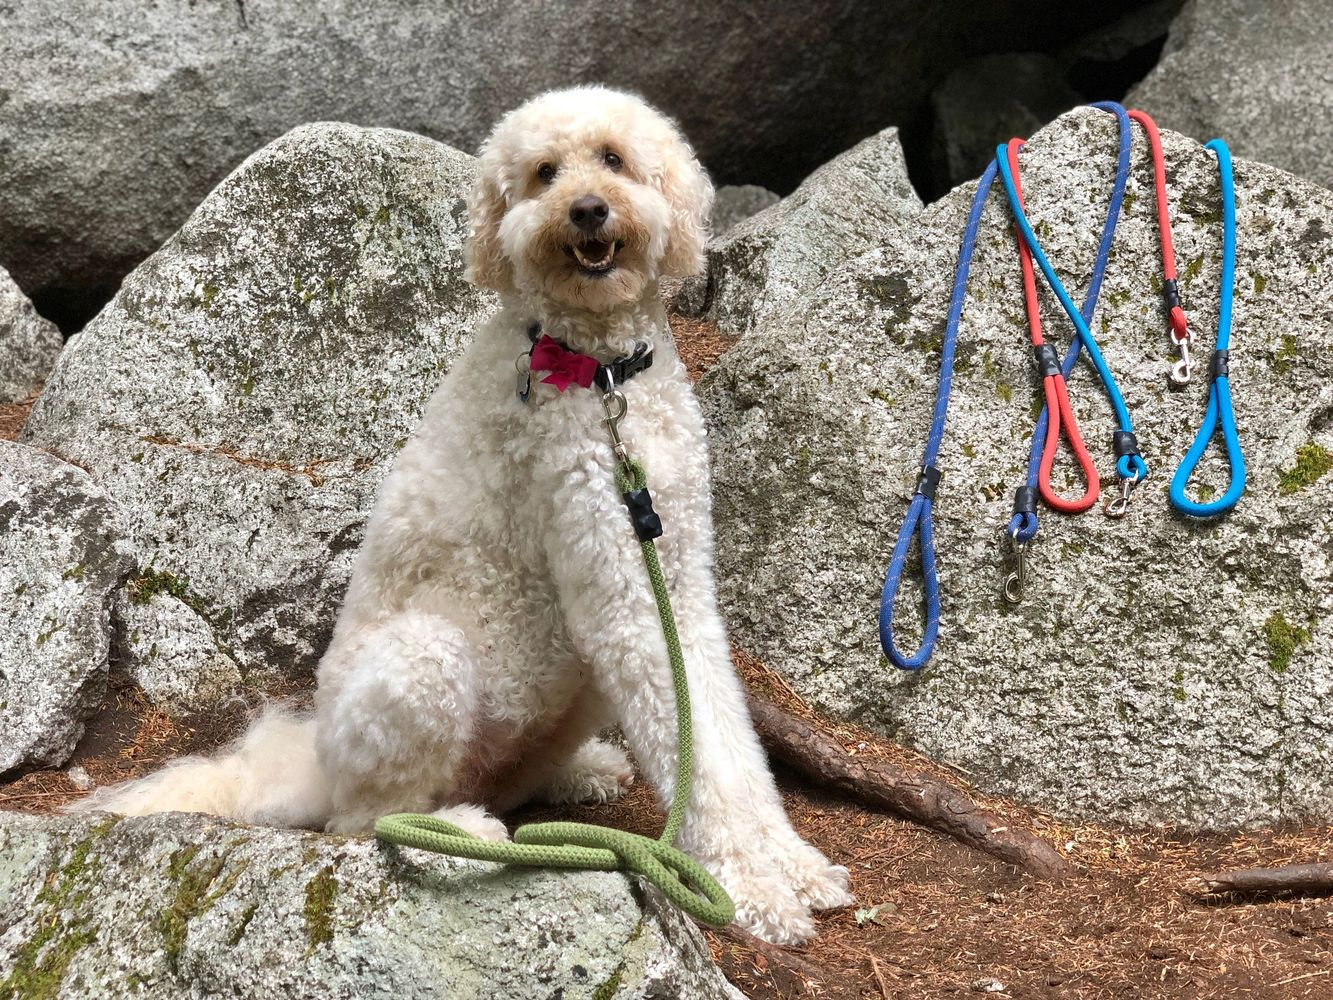 Jinger with upcycled climbing rope leashes